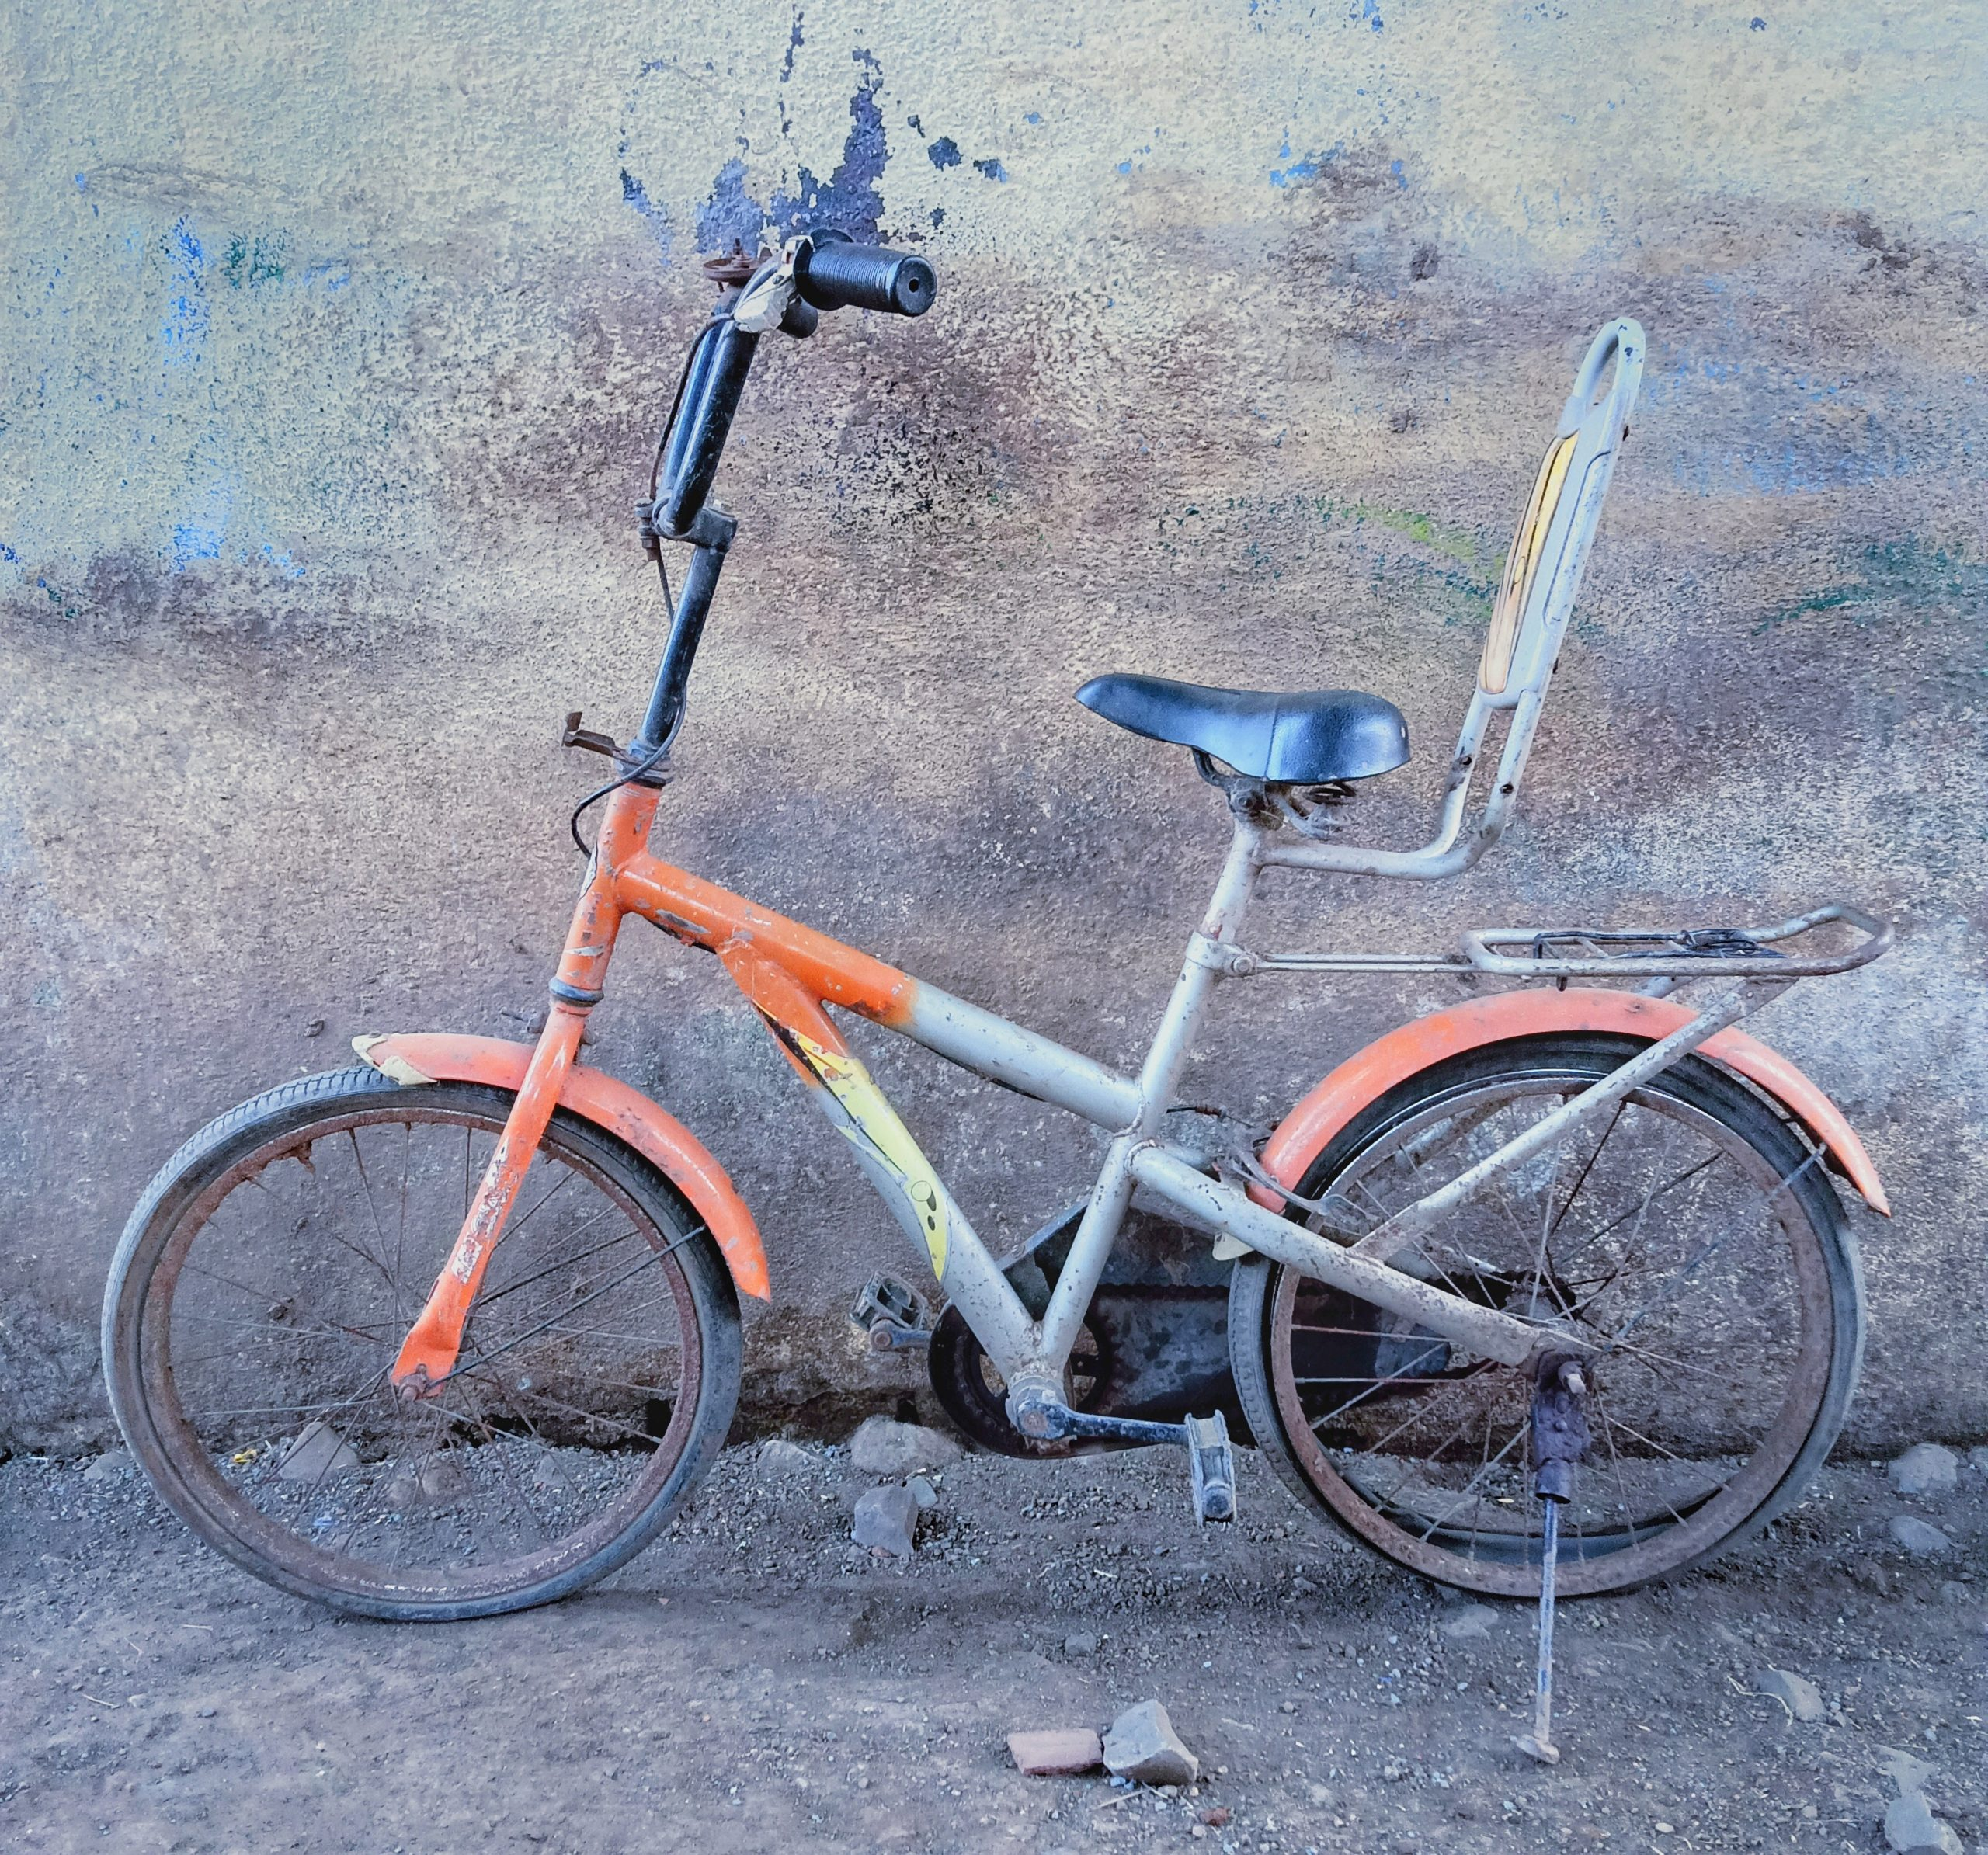 A kid's bicycle